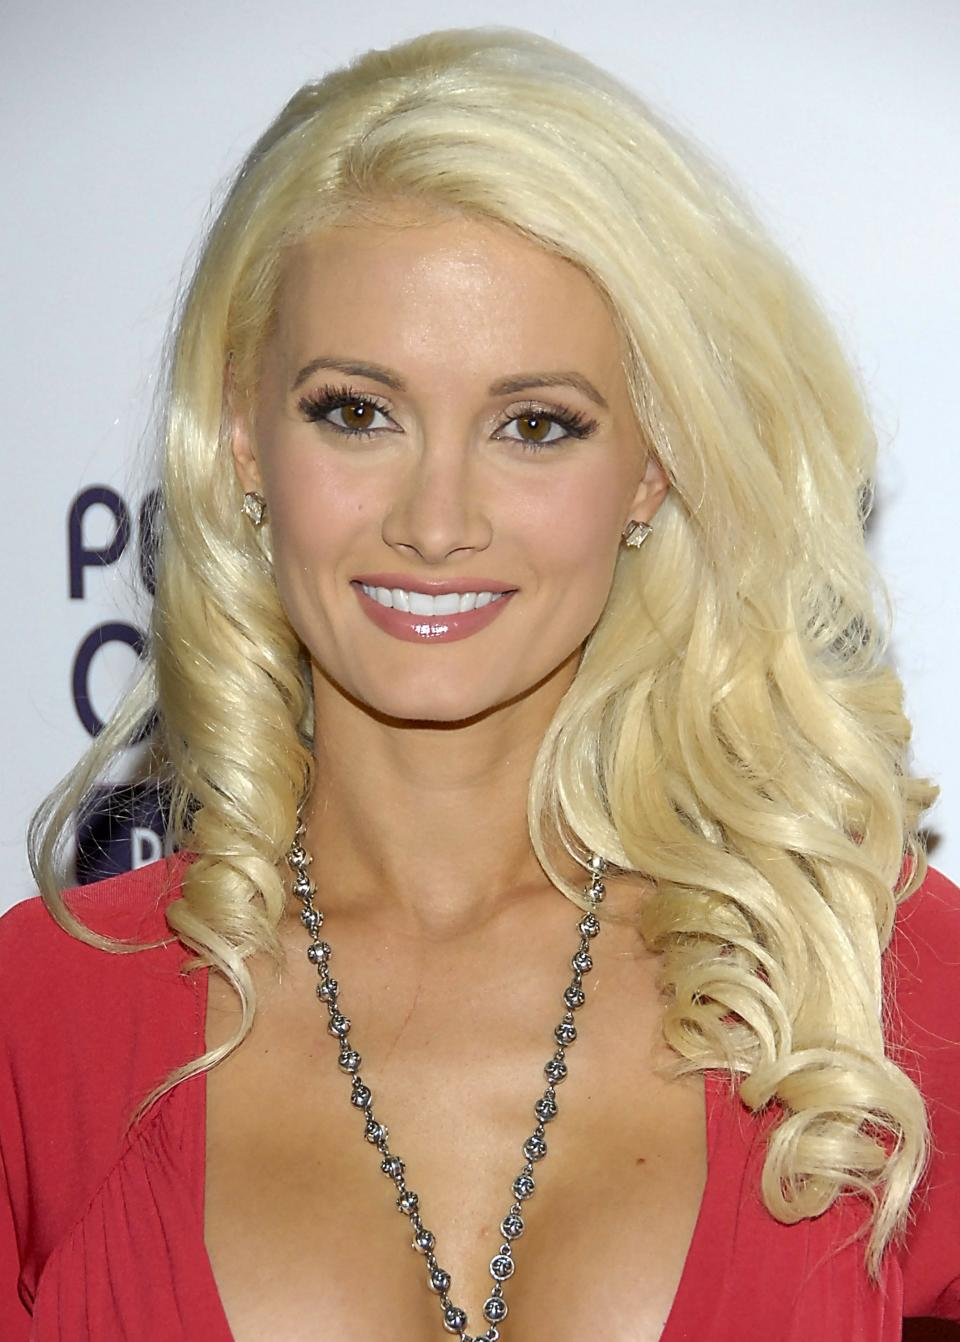 FILE - In this Oct. 12, 2008 file photo, model Holly Madison poses on the press line at the Hollywood Life 5th Annual Hollywood Style Awards in Los Angeles.  Burlesque performer and Las Vegas Strip star, Madison has announced she's going to be a first-time mom.(AP Photo/Dan Steinberg, file)